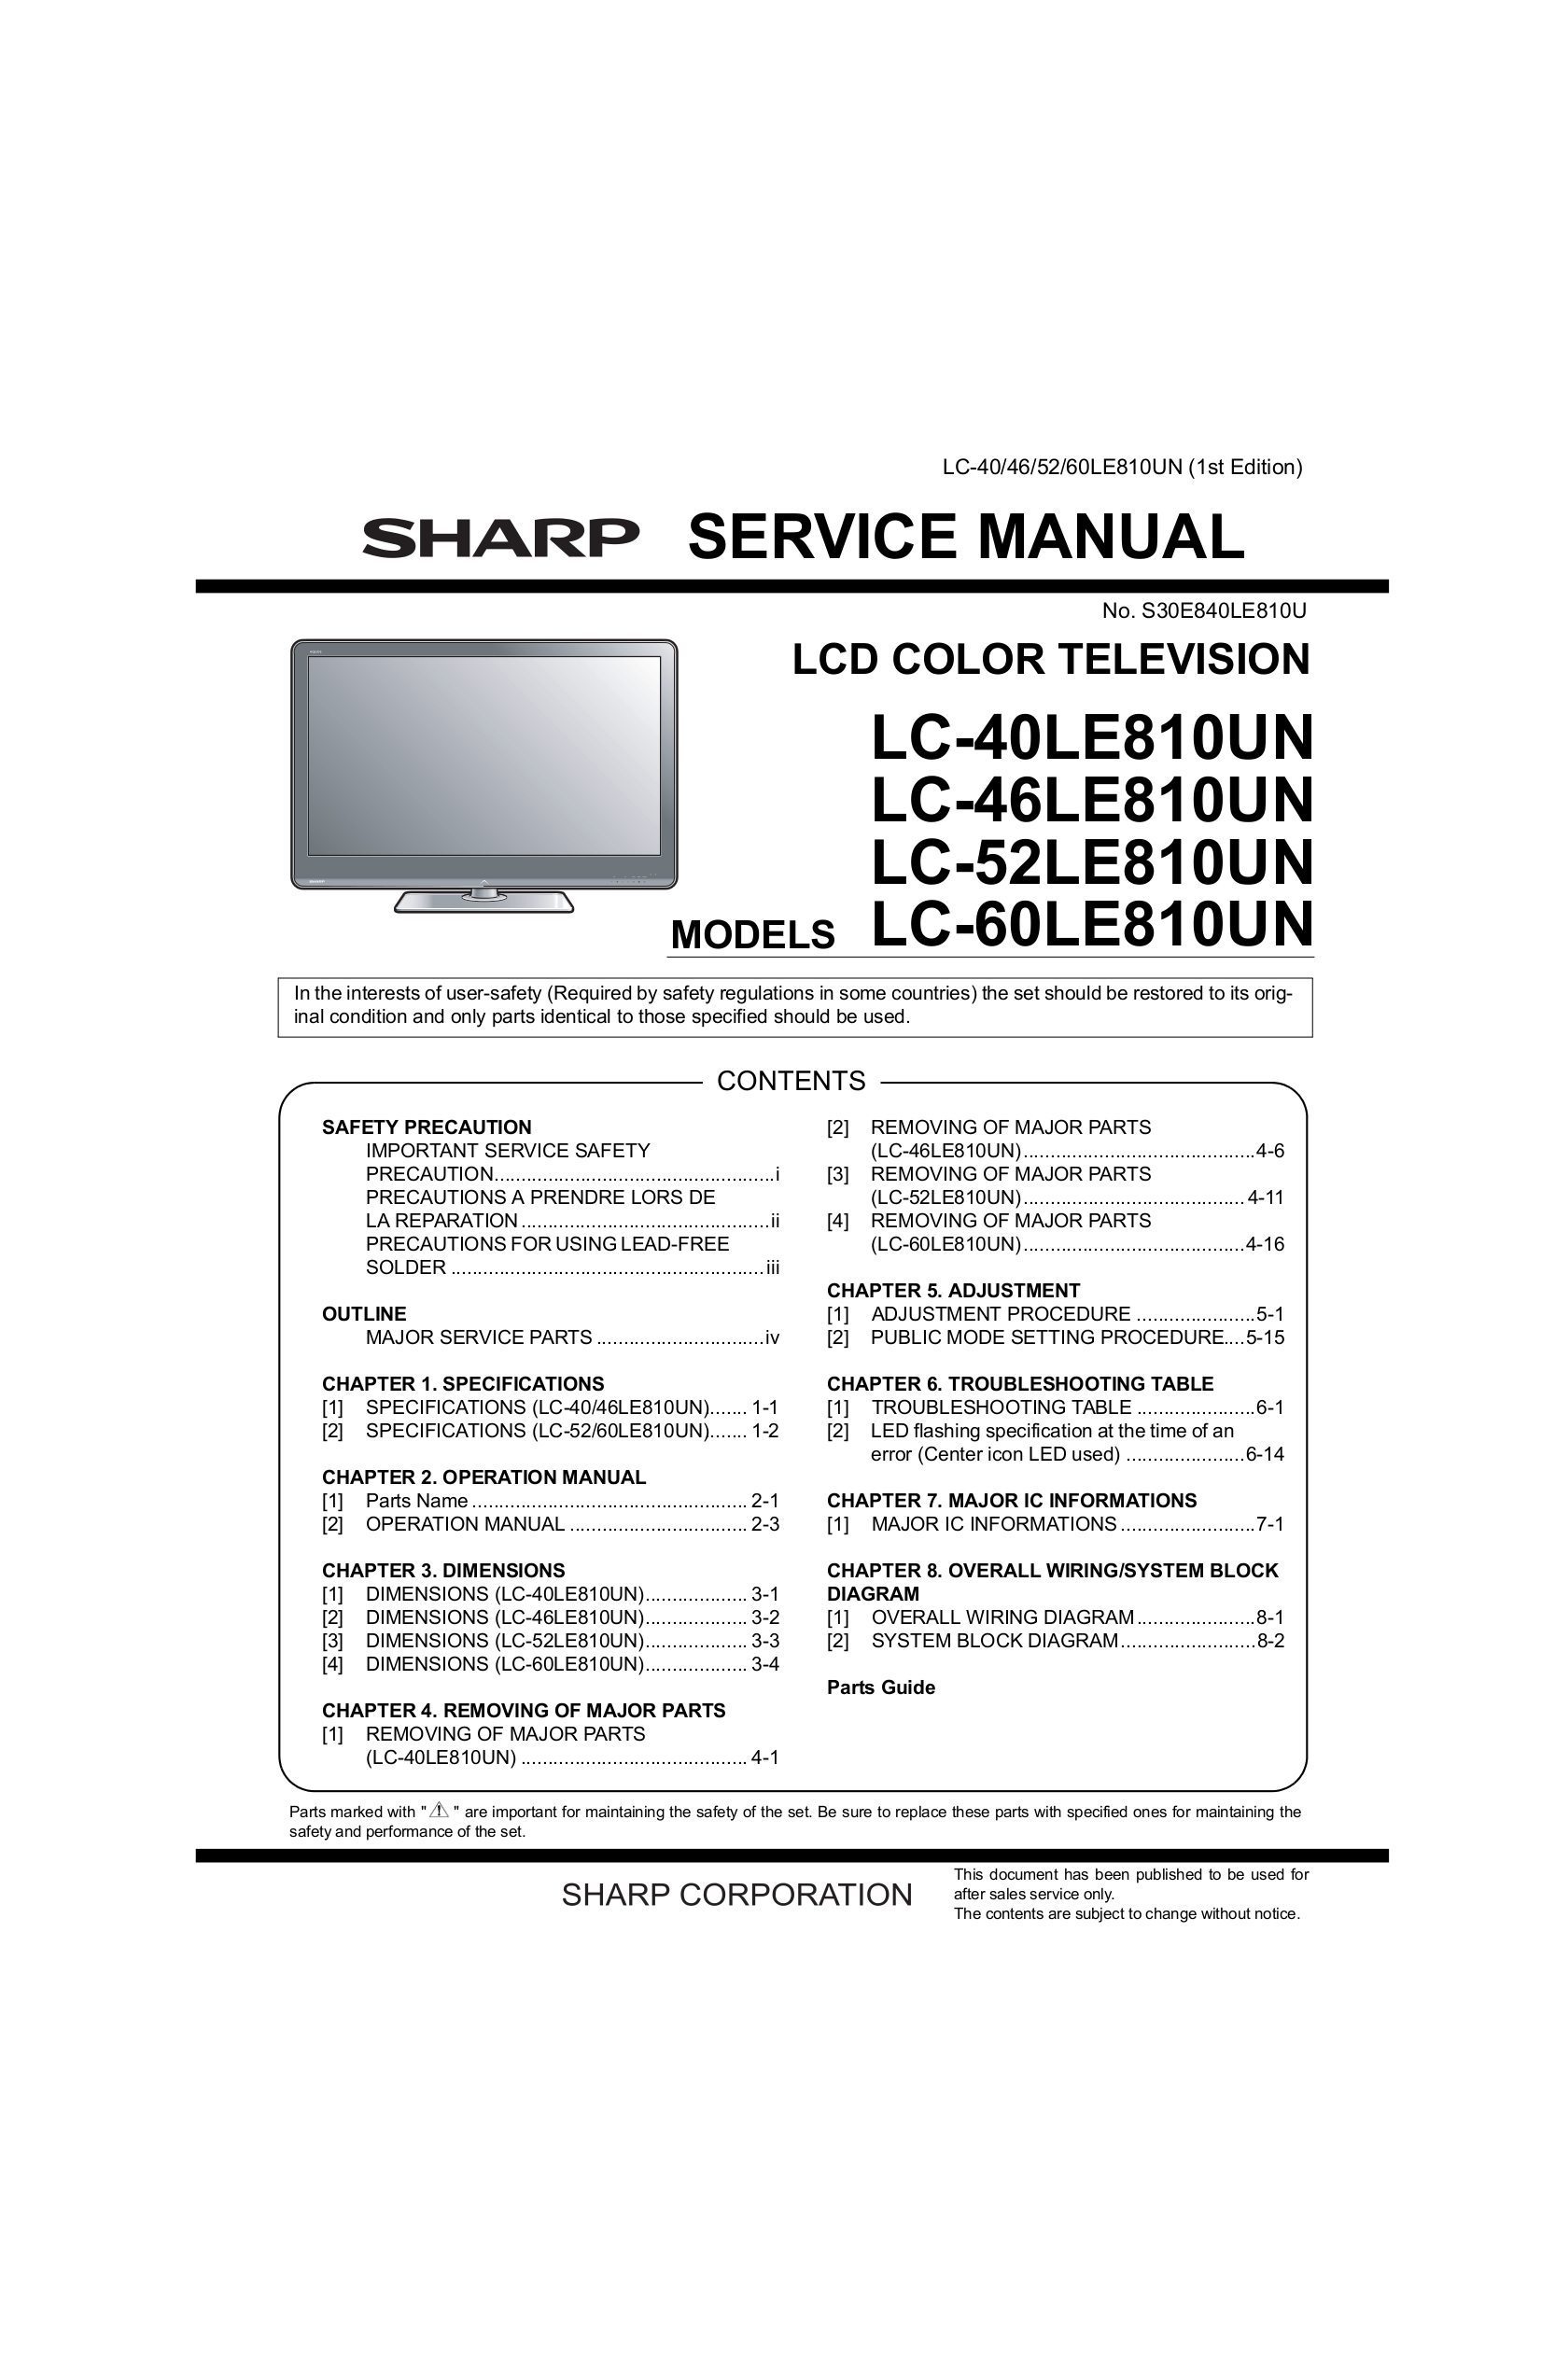 download free pdf for sharp aquos lc 40le810un tv manual rh umlib com Sharp AQUOS Quattron 60 LED HDTV Model Newest Sharp AQUOS Quattron 60 LED HDTV Model Newest